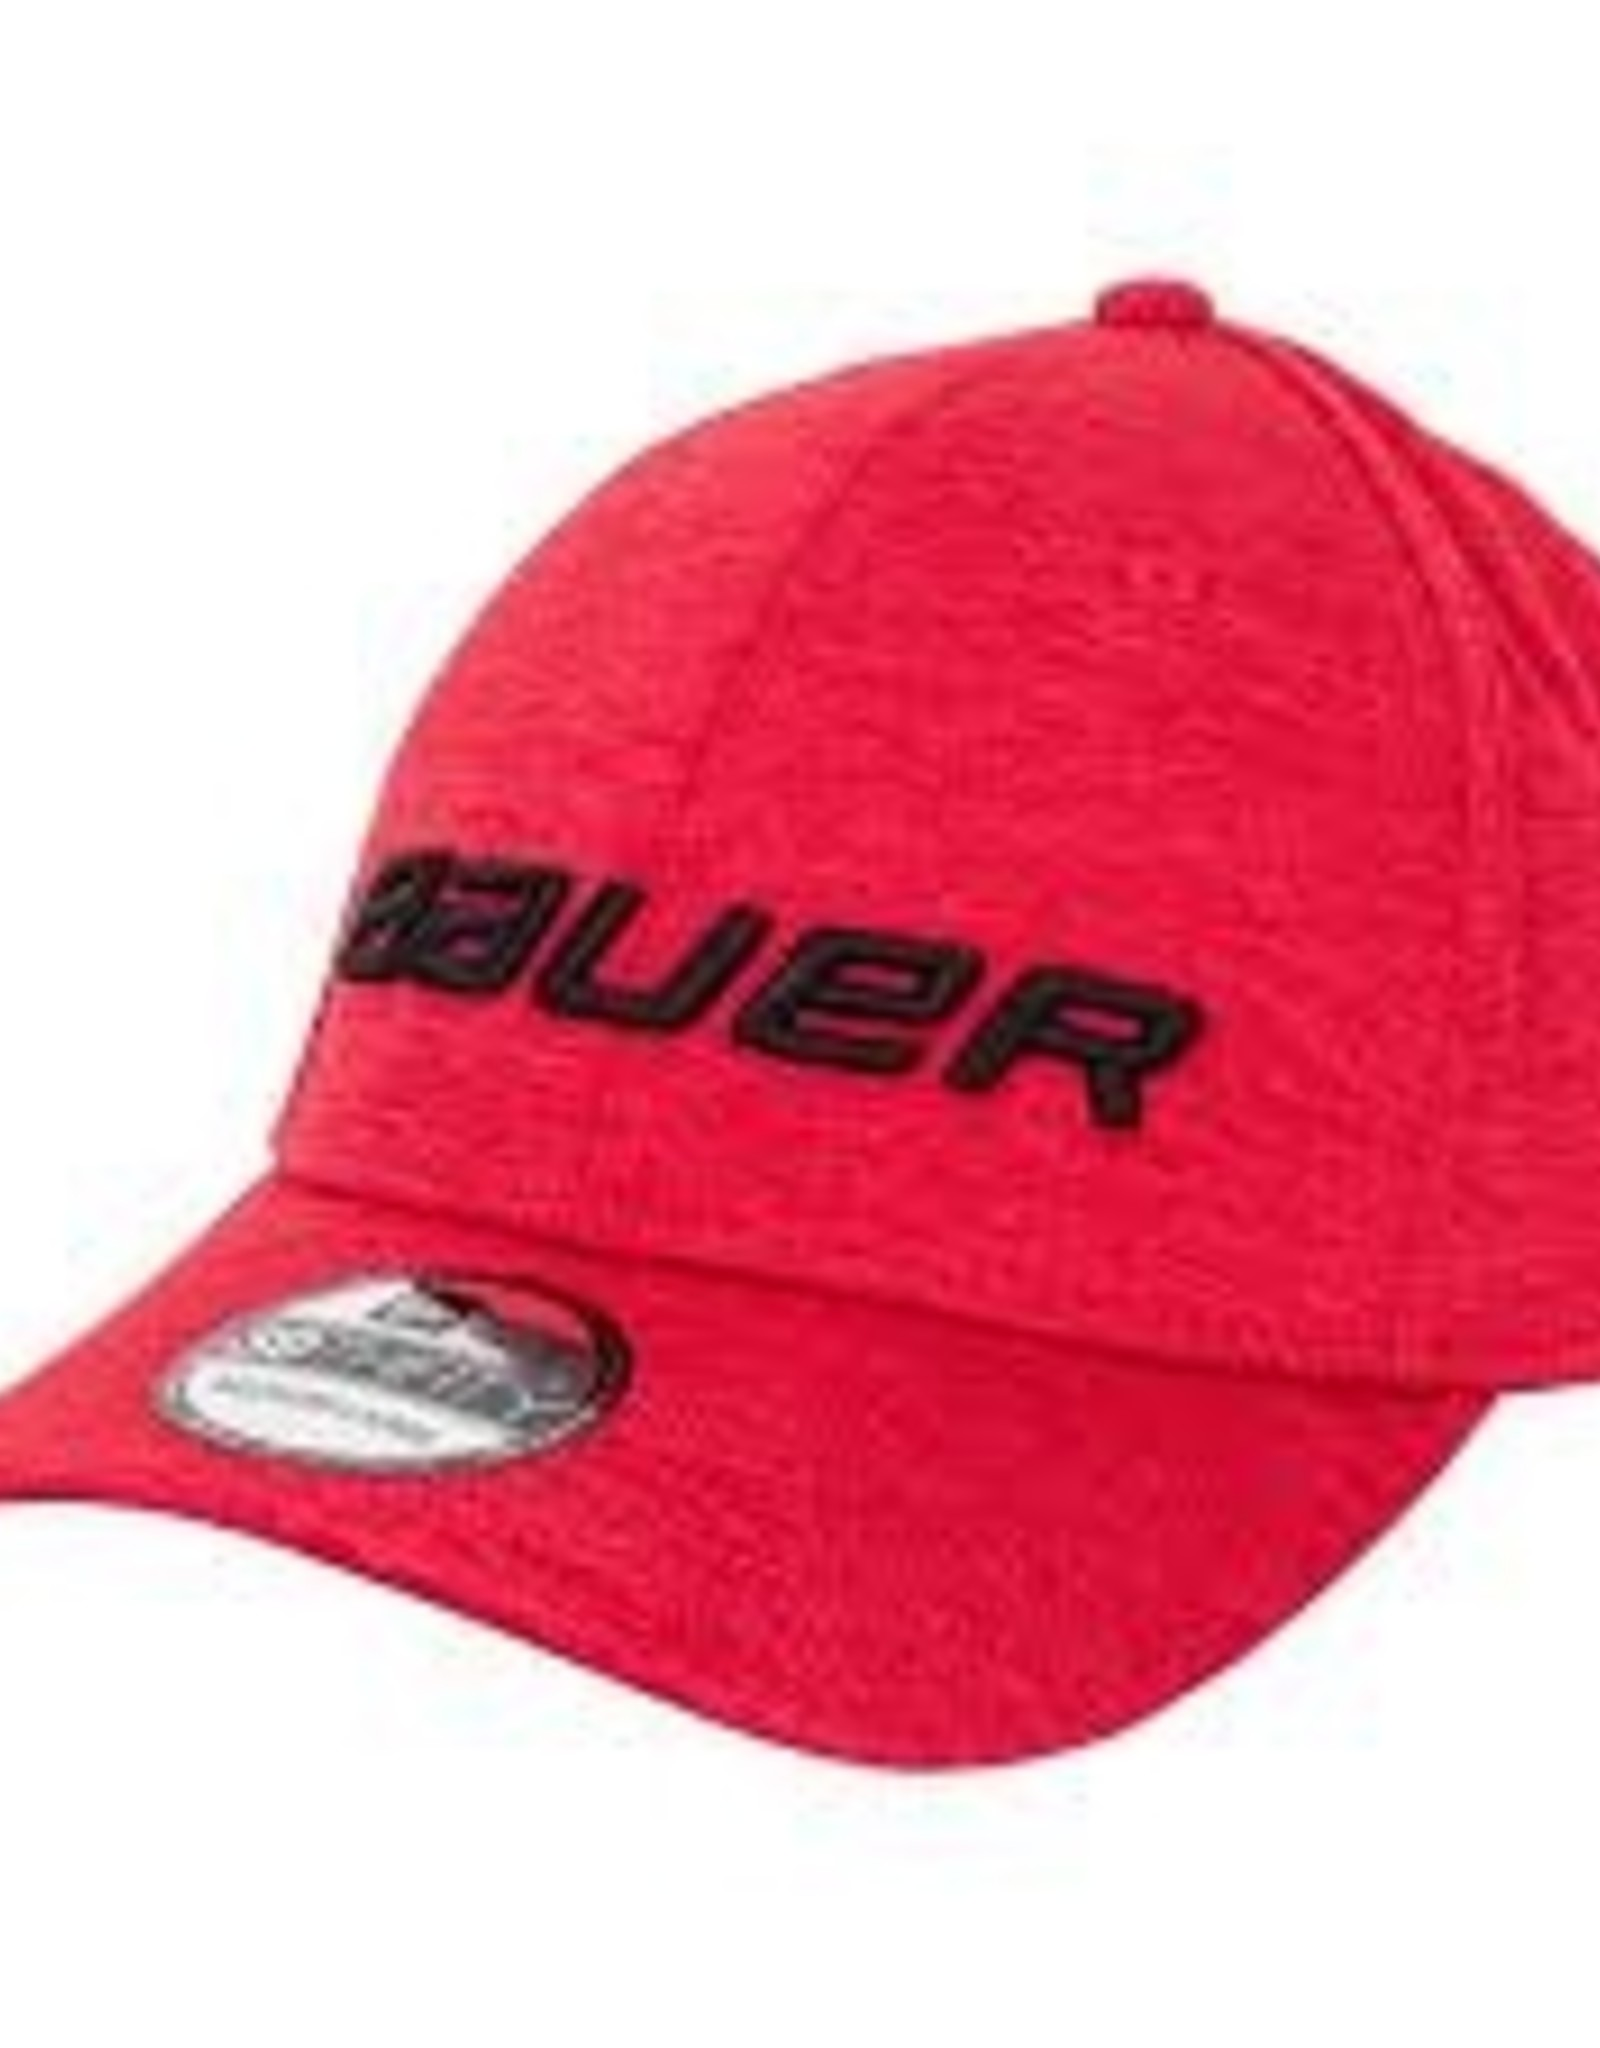 Bauer Bauer Shadow Tech 39Thirty Red